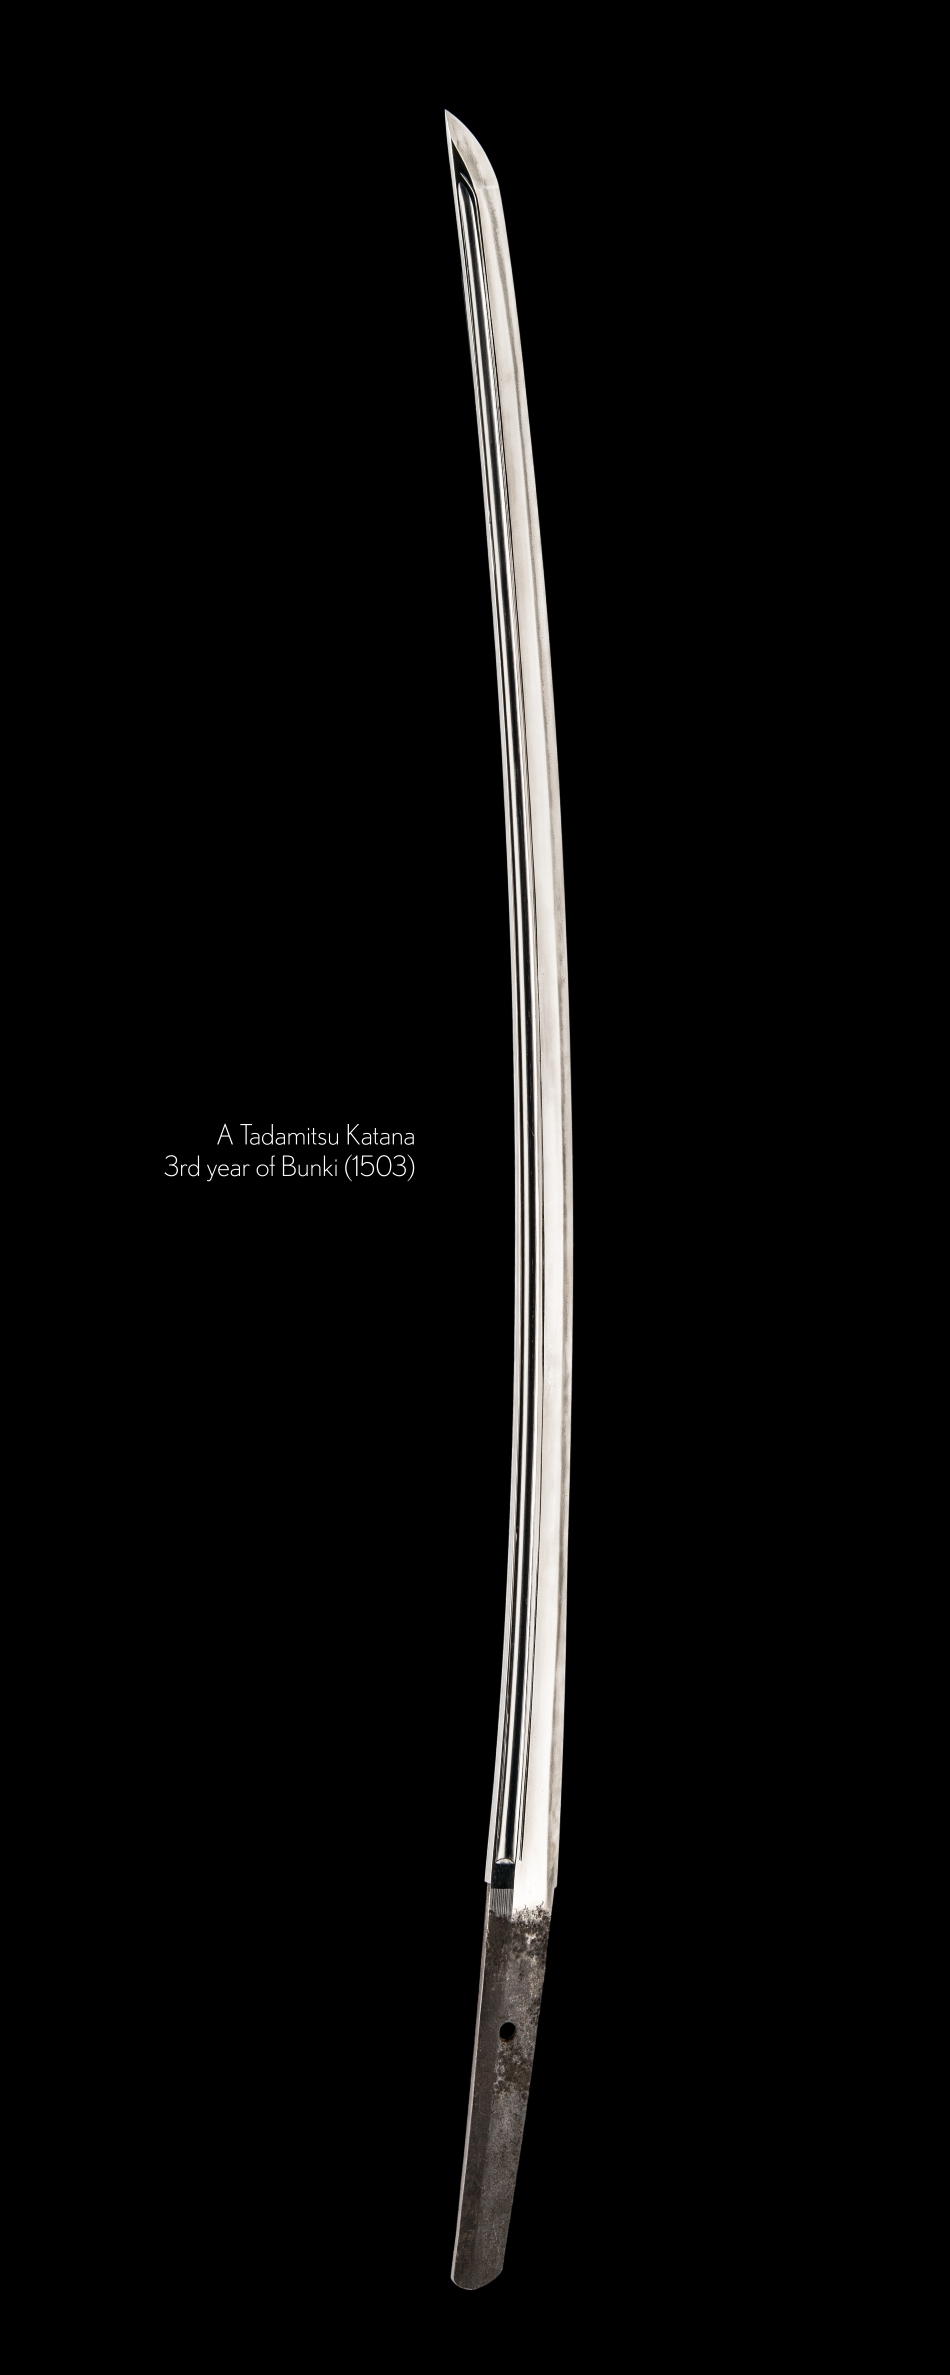 Tadamitsu Katana from August 1503